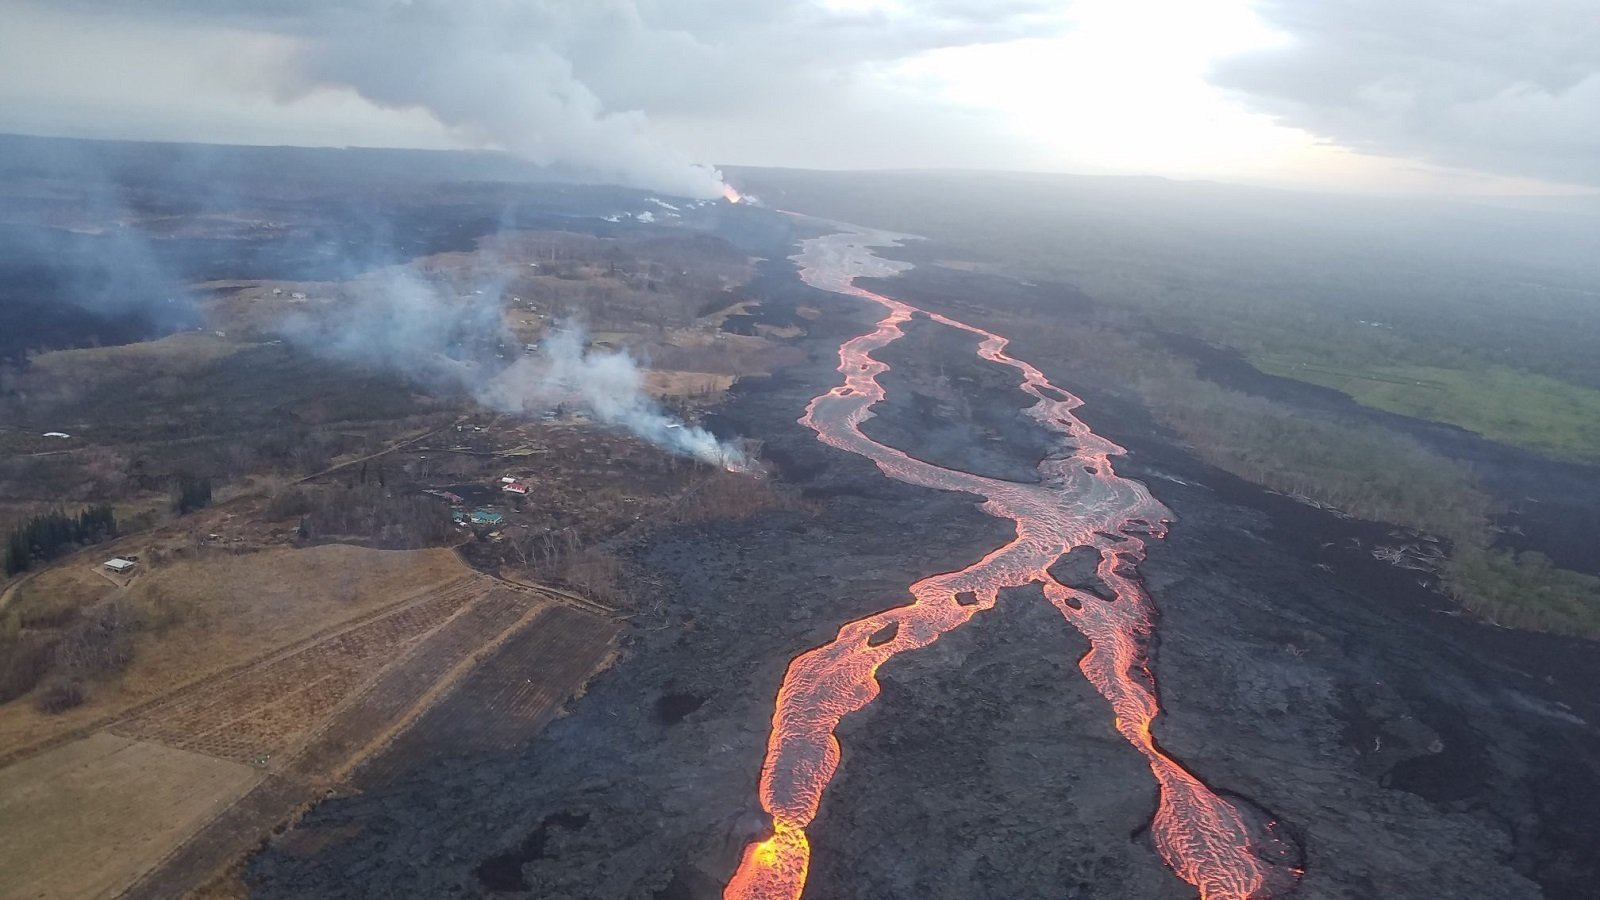 Lava flows toward the ocean in Hawaii. (Source: USGS)